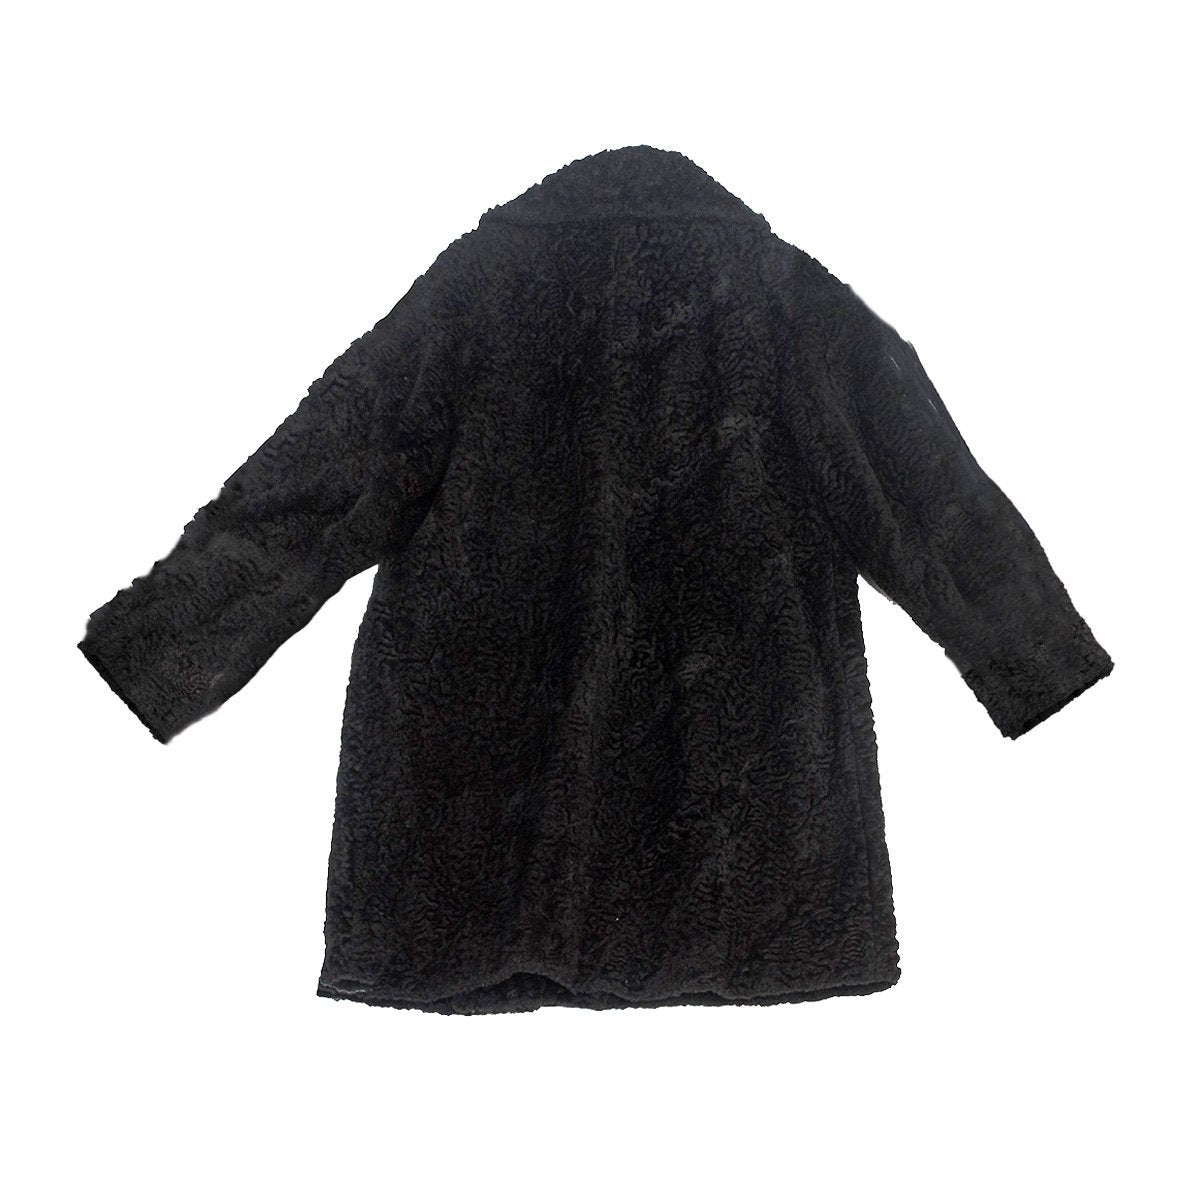 Vintage 60s Black Persian Lamb Car Coat 4